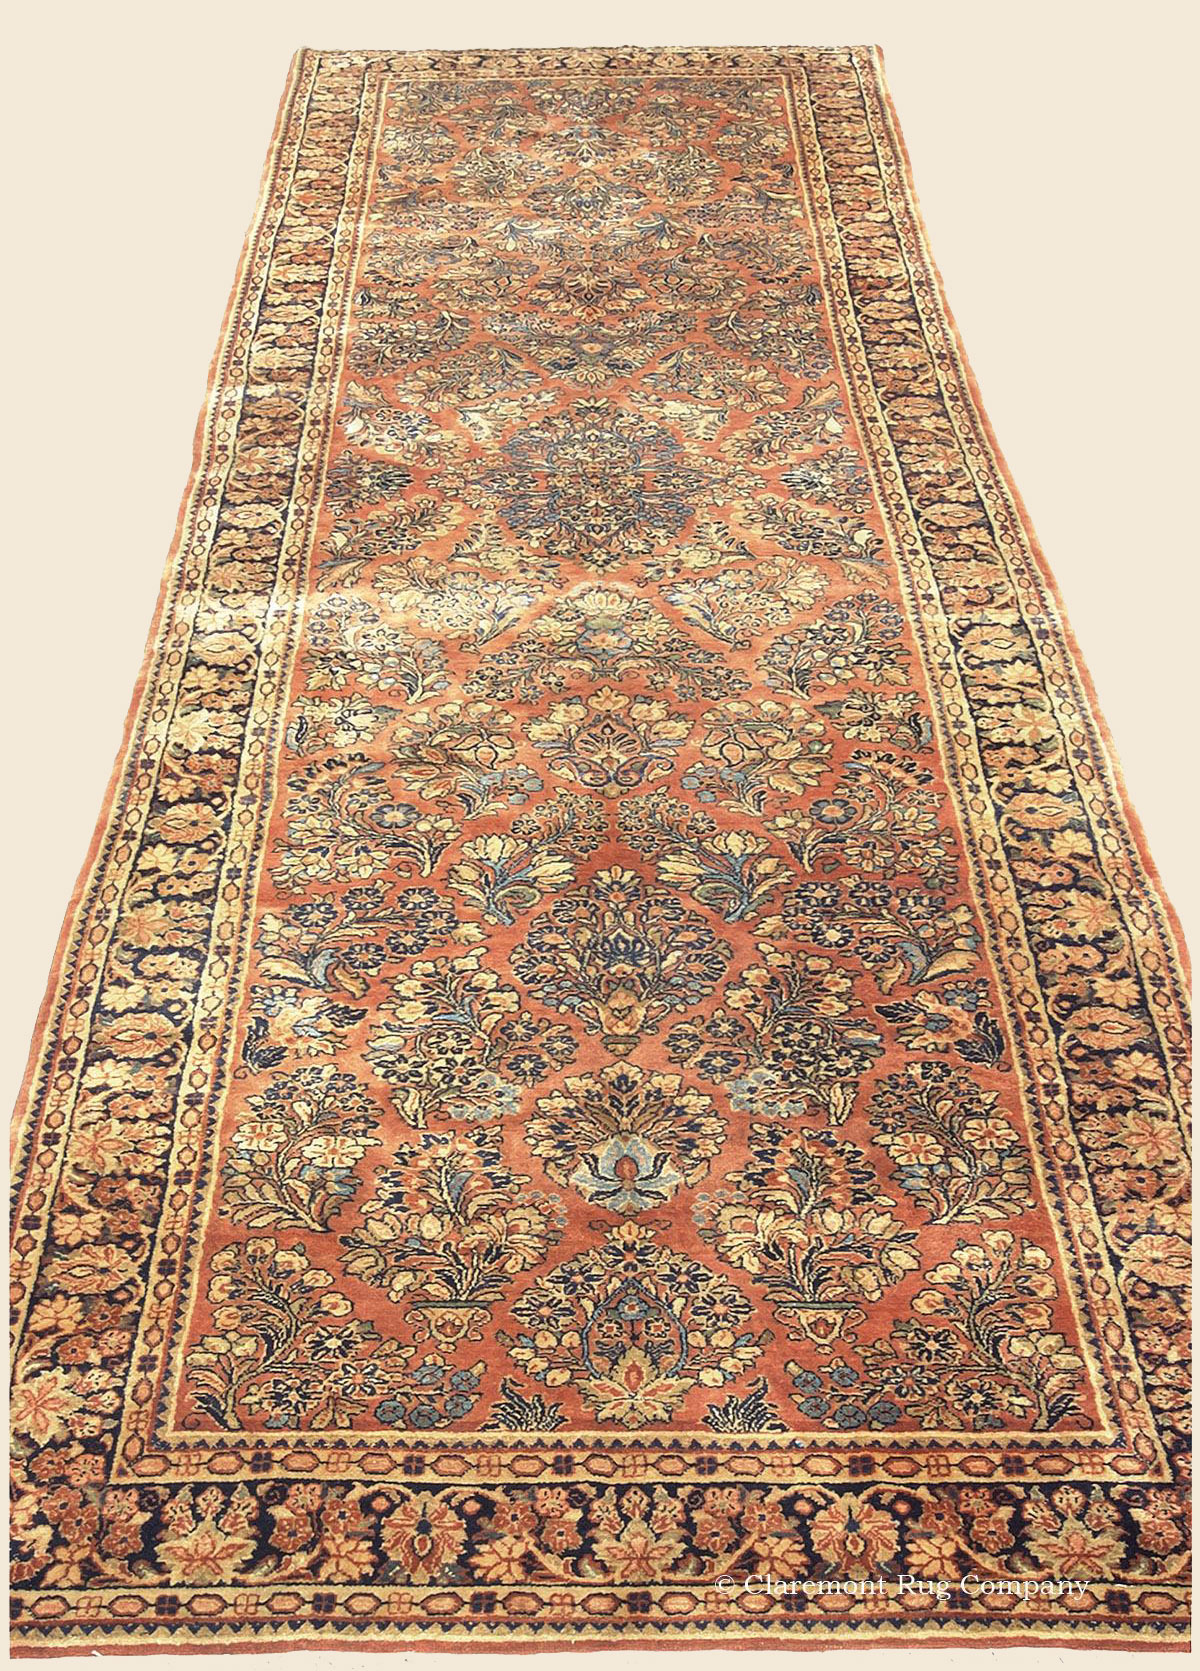 Mahajiran Sarouk Runner West Central Persian Antique Rug